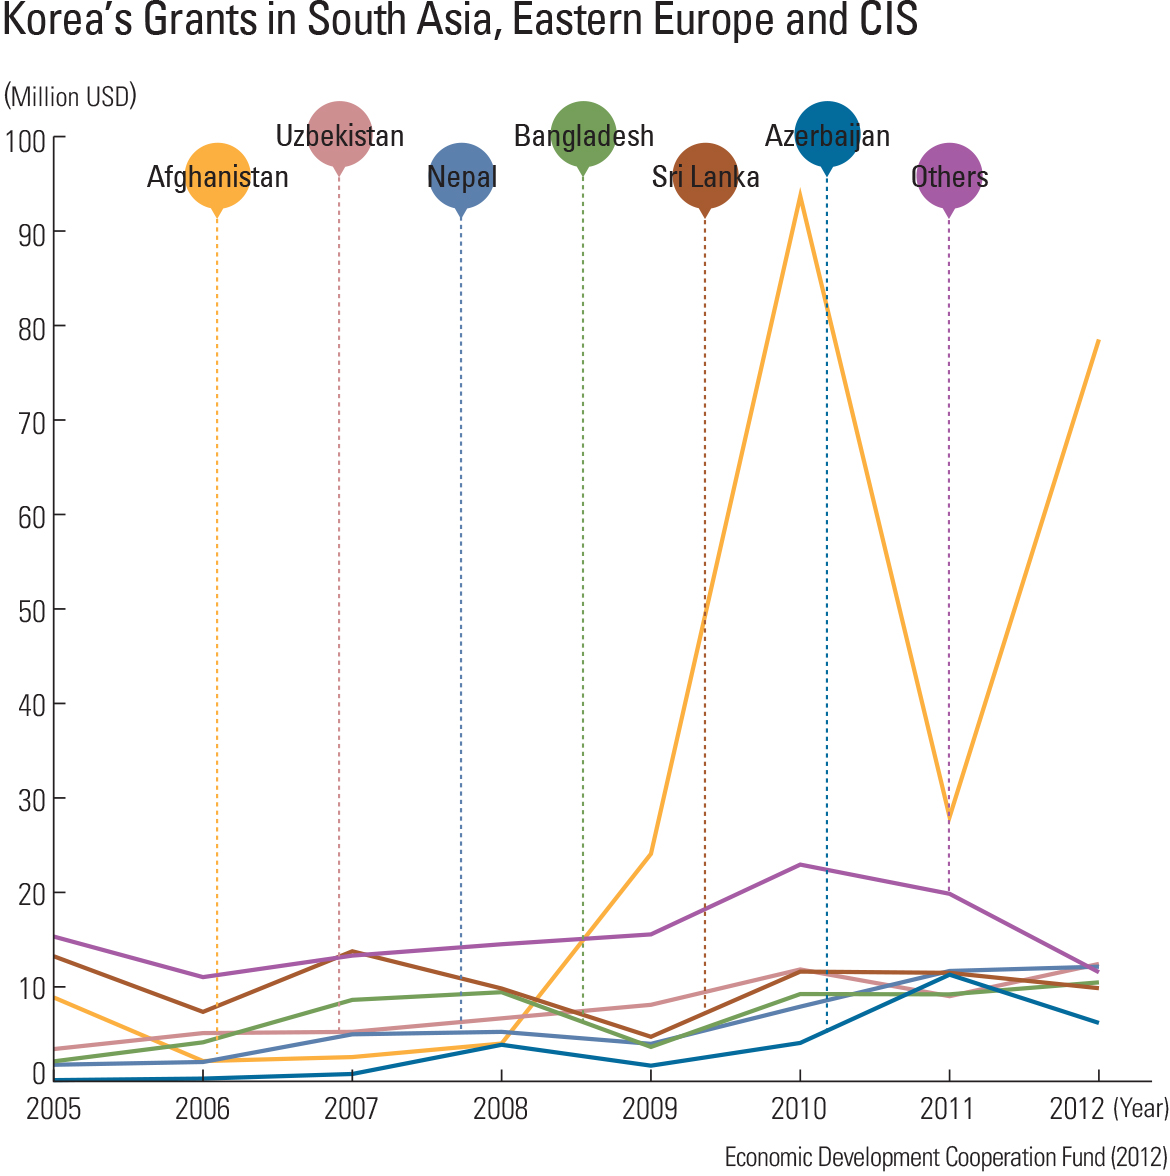 Korea's Grants in South Asia, Eastern Europe and CIS